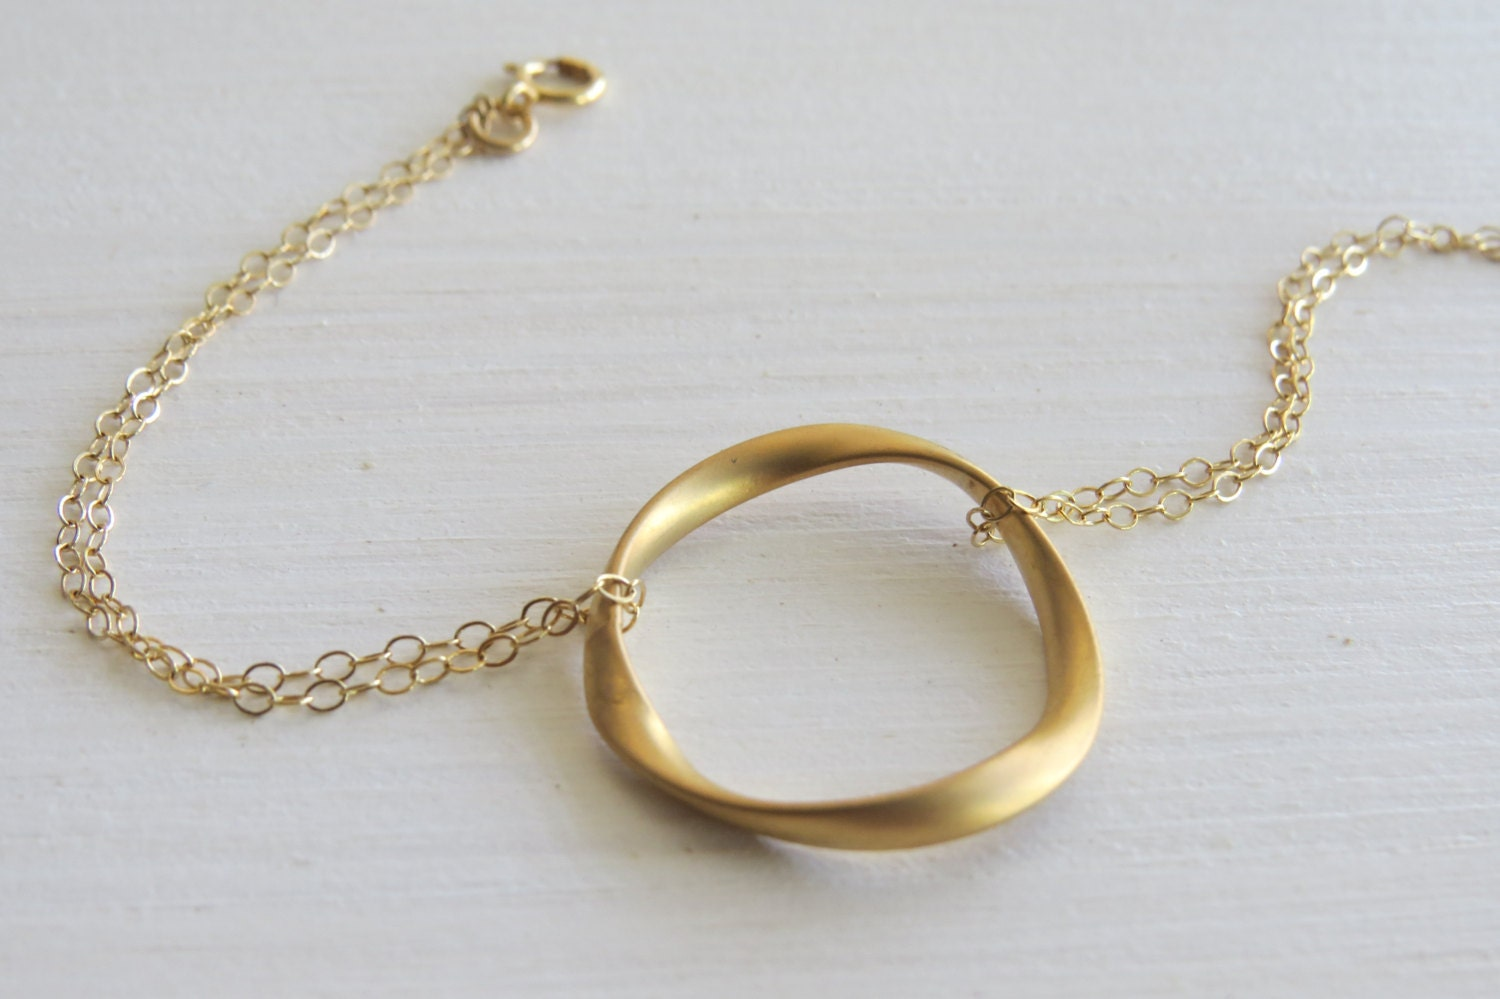 Gold circle bracelet - Goldfilled bracelet, Simple bracelet, Gold eternity bracelet, Dainty bracelet, Gold jewelry, Modern gold bracelet - HLcollection